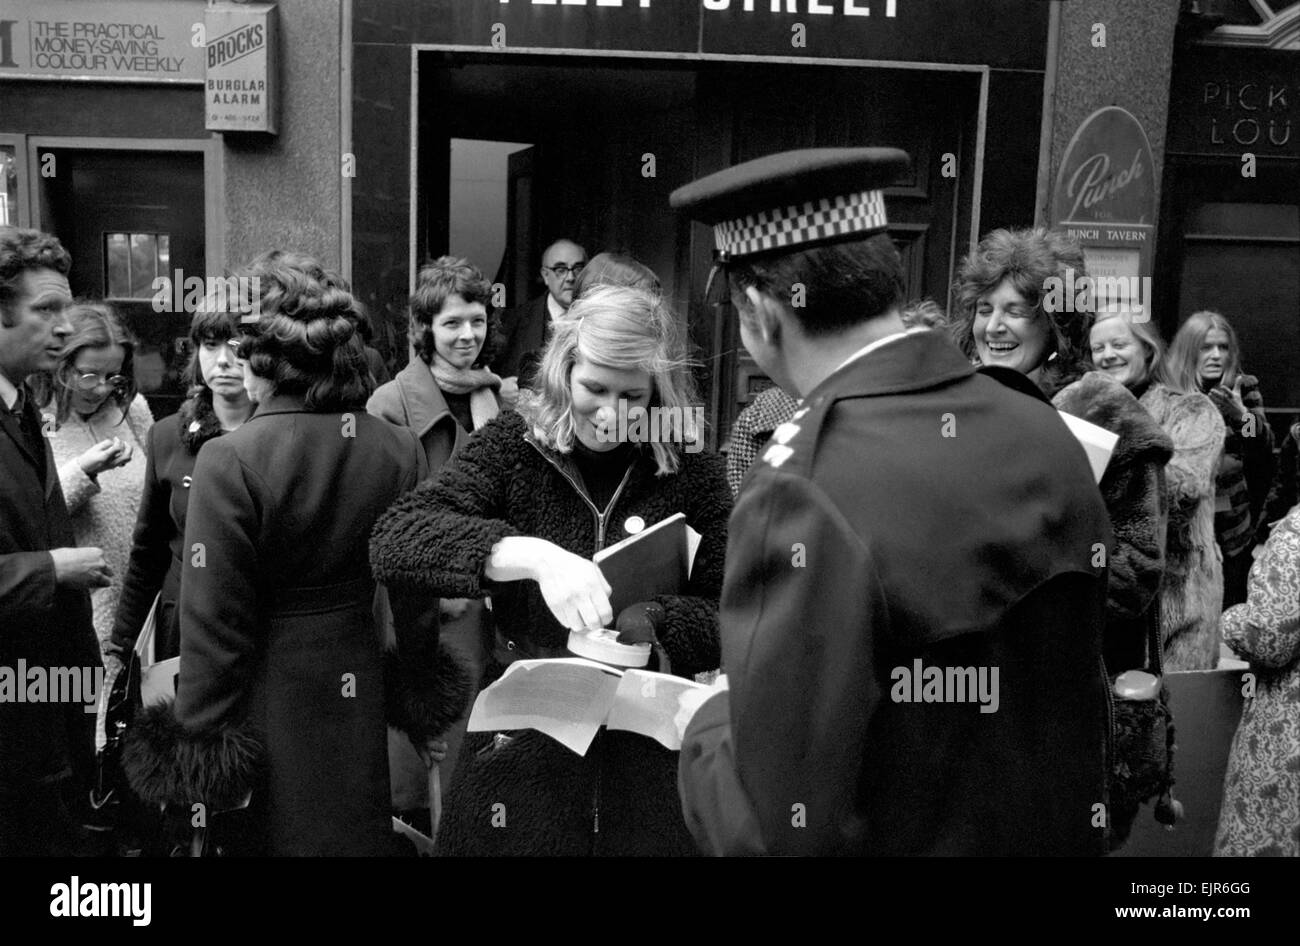 c97a6d79dd Outside the offices of Punch members of the women's liberation protested  against their so-called